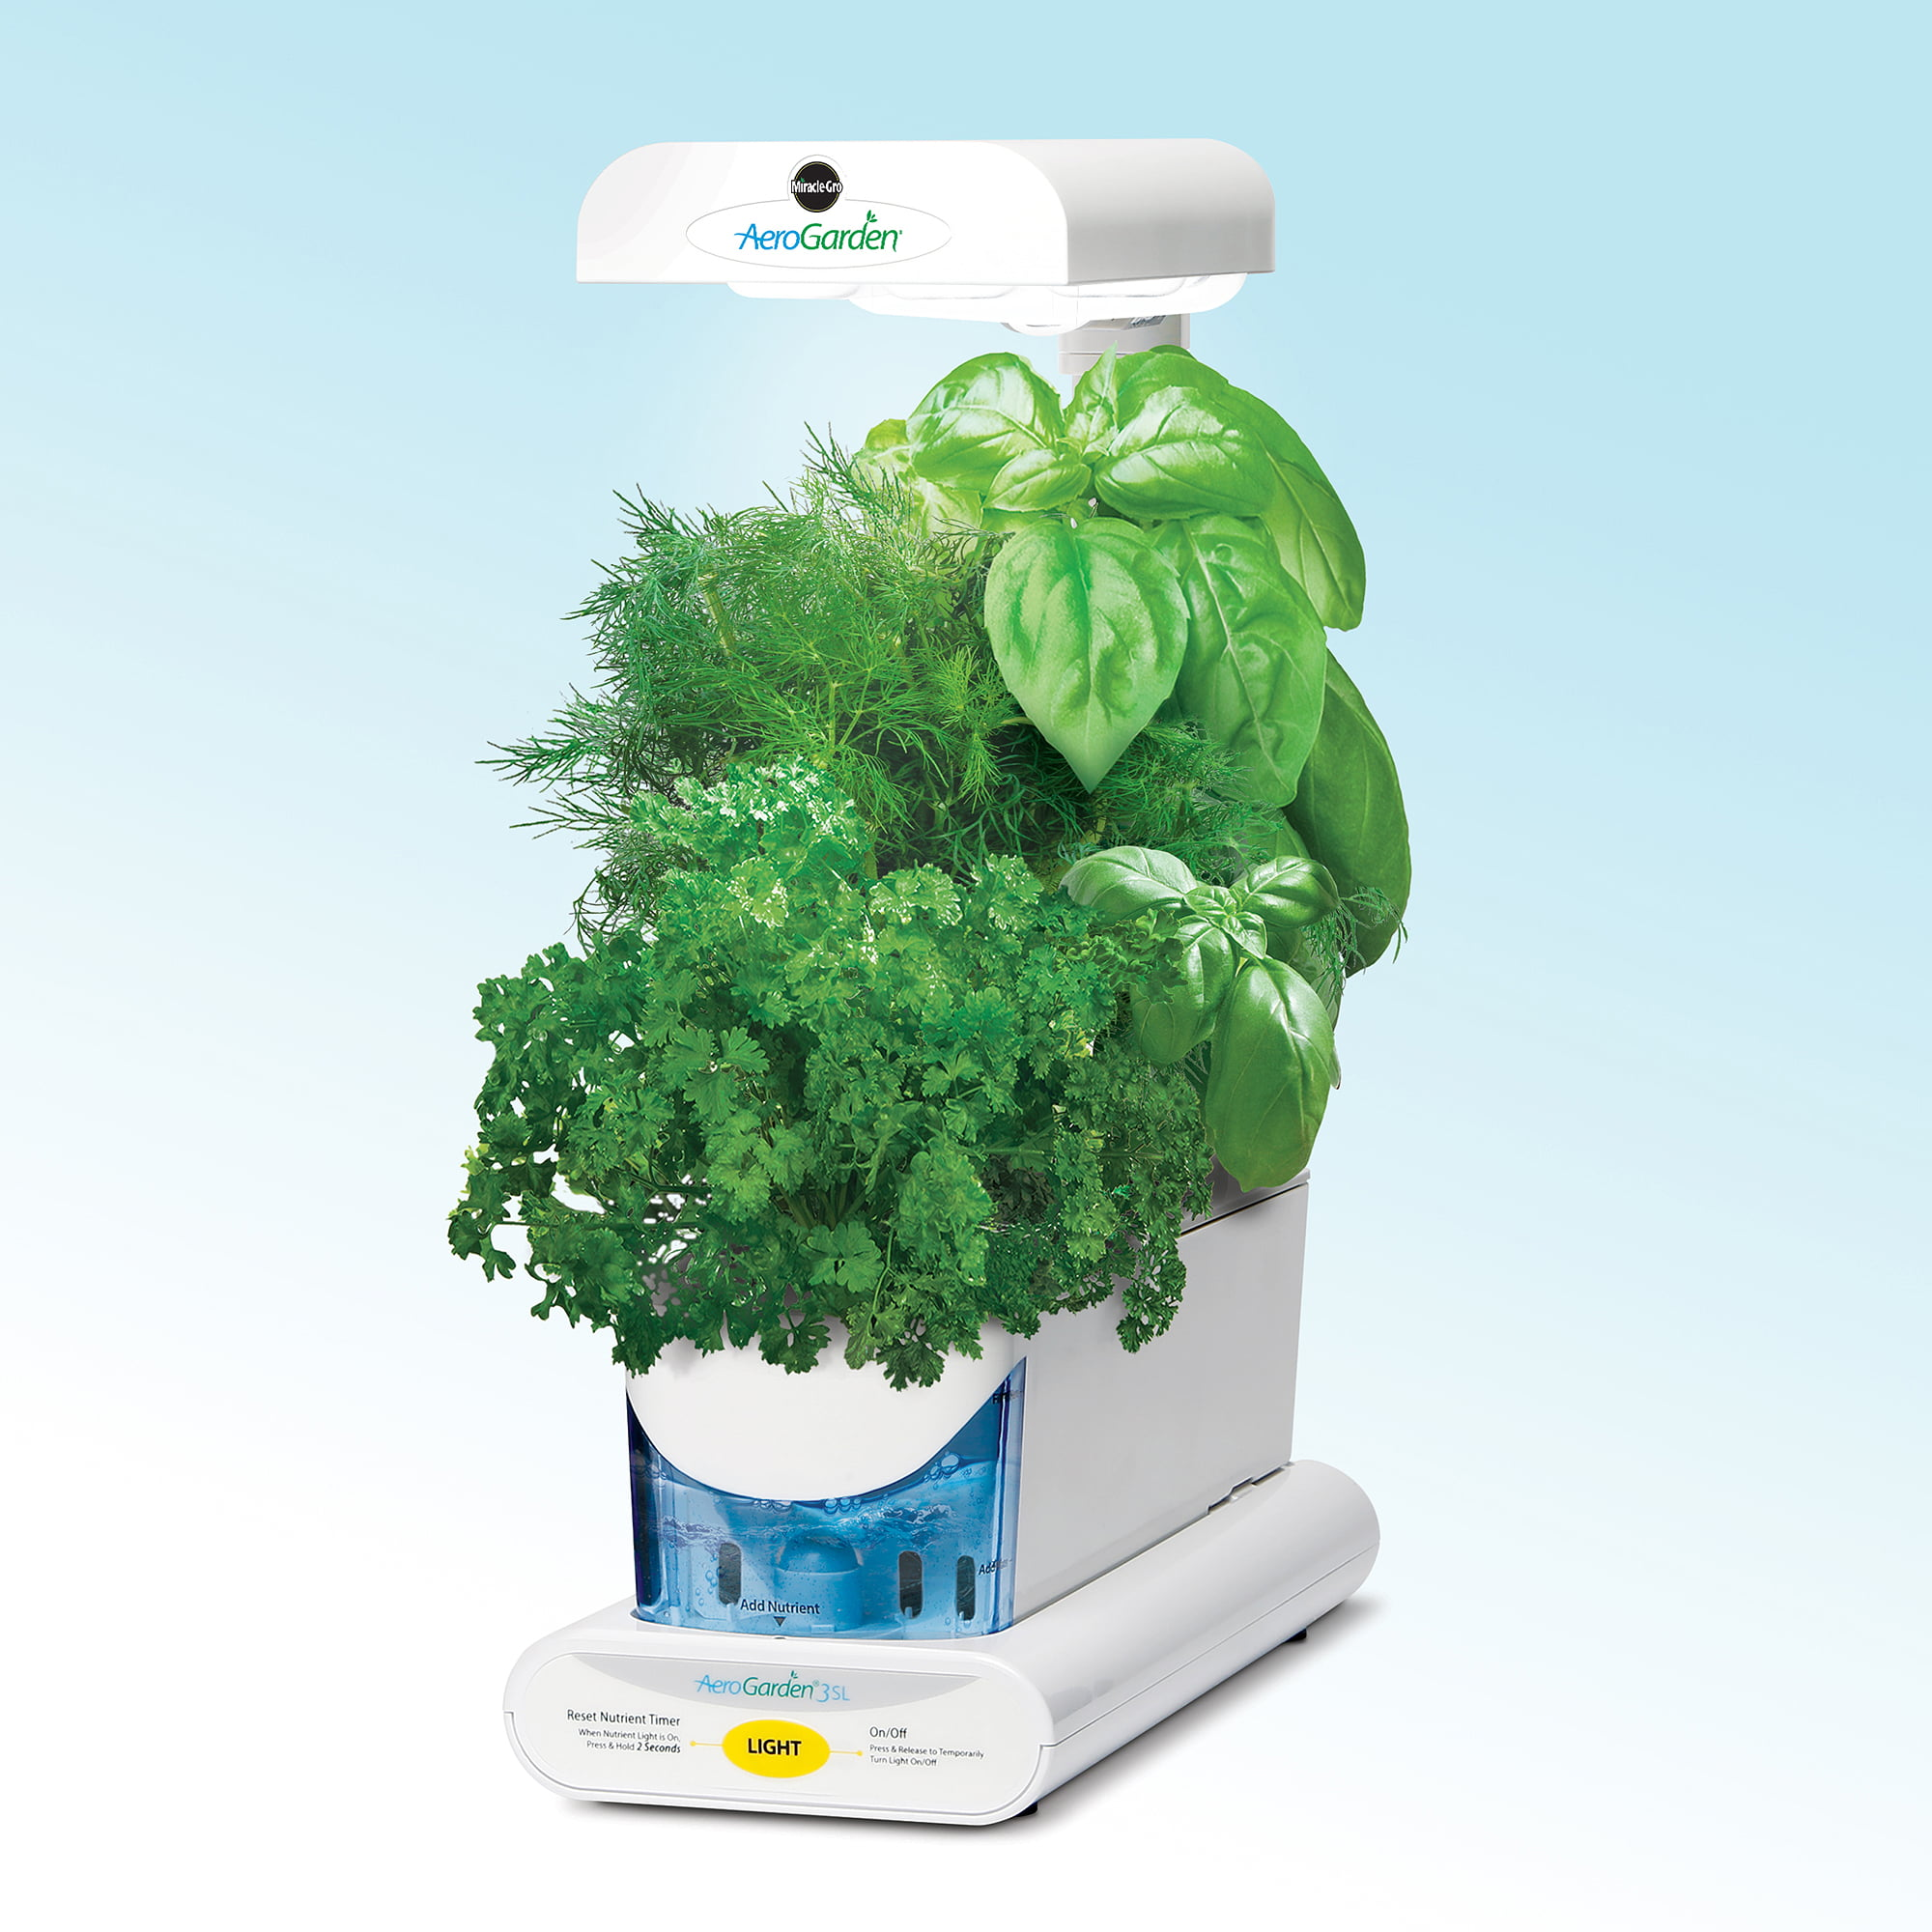 Marvelous Miracle Gro AeroGarden 3SL With Gourmet Herb 3 Pod Seed Kit   Walmart.com